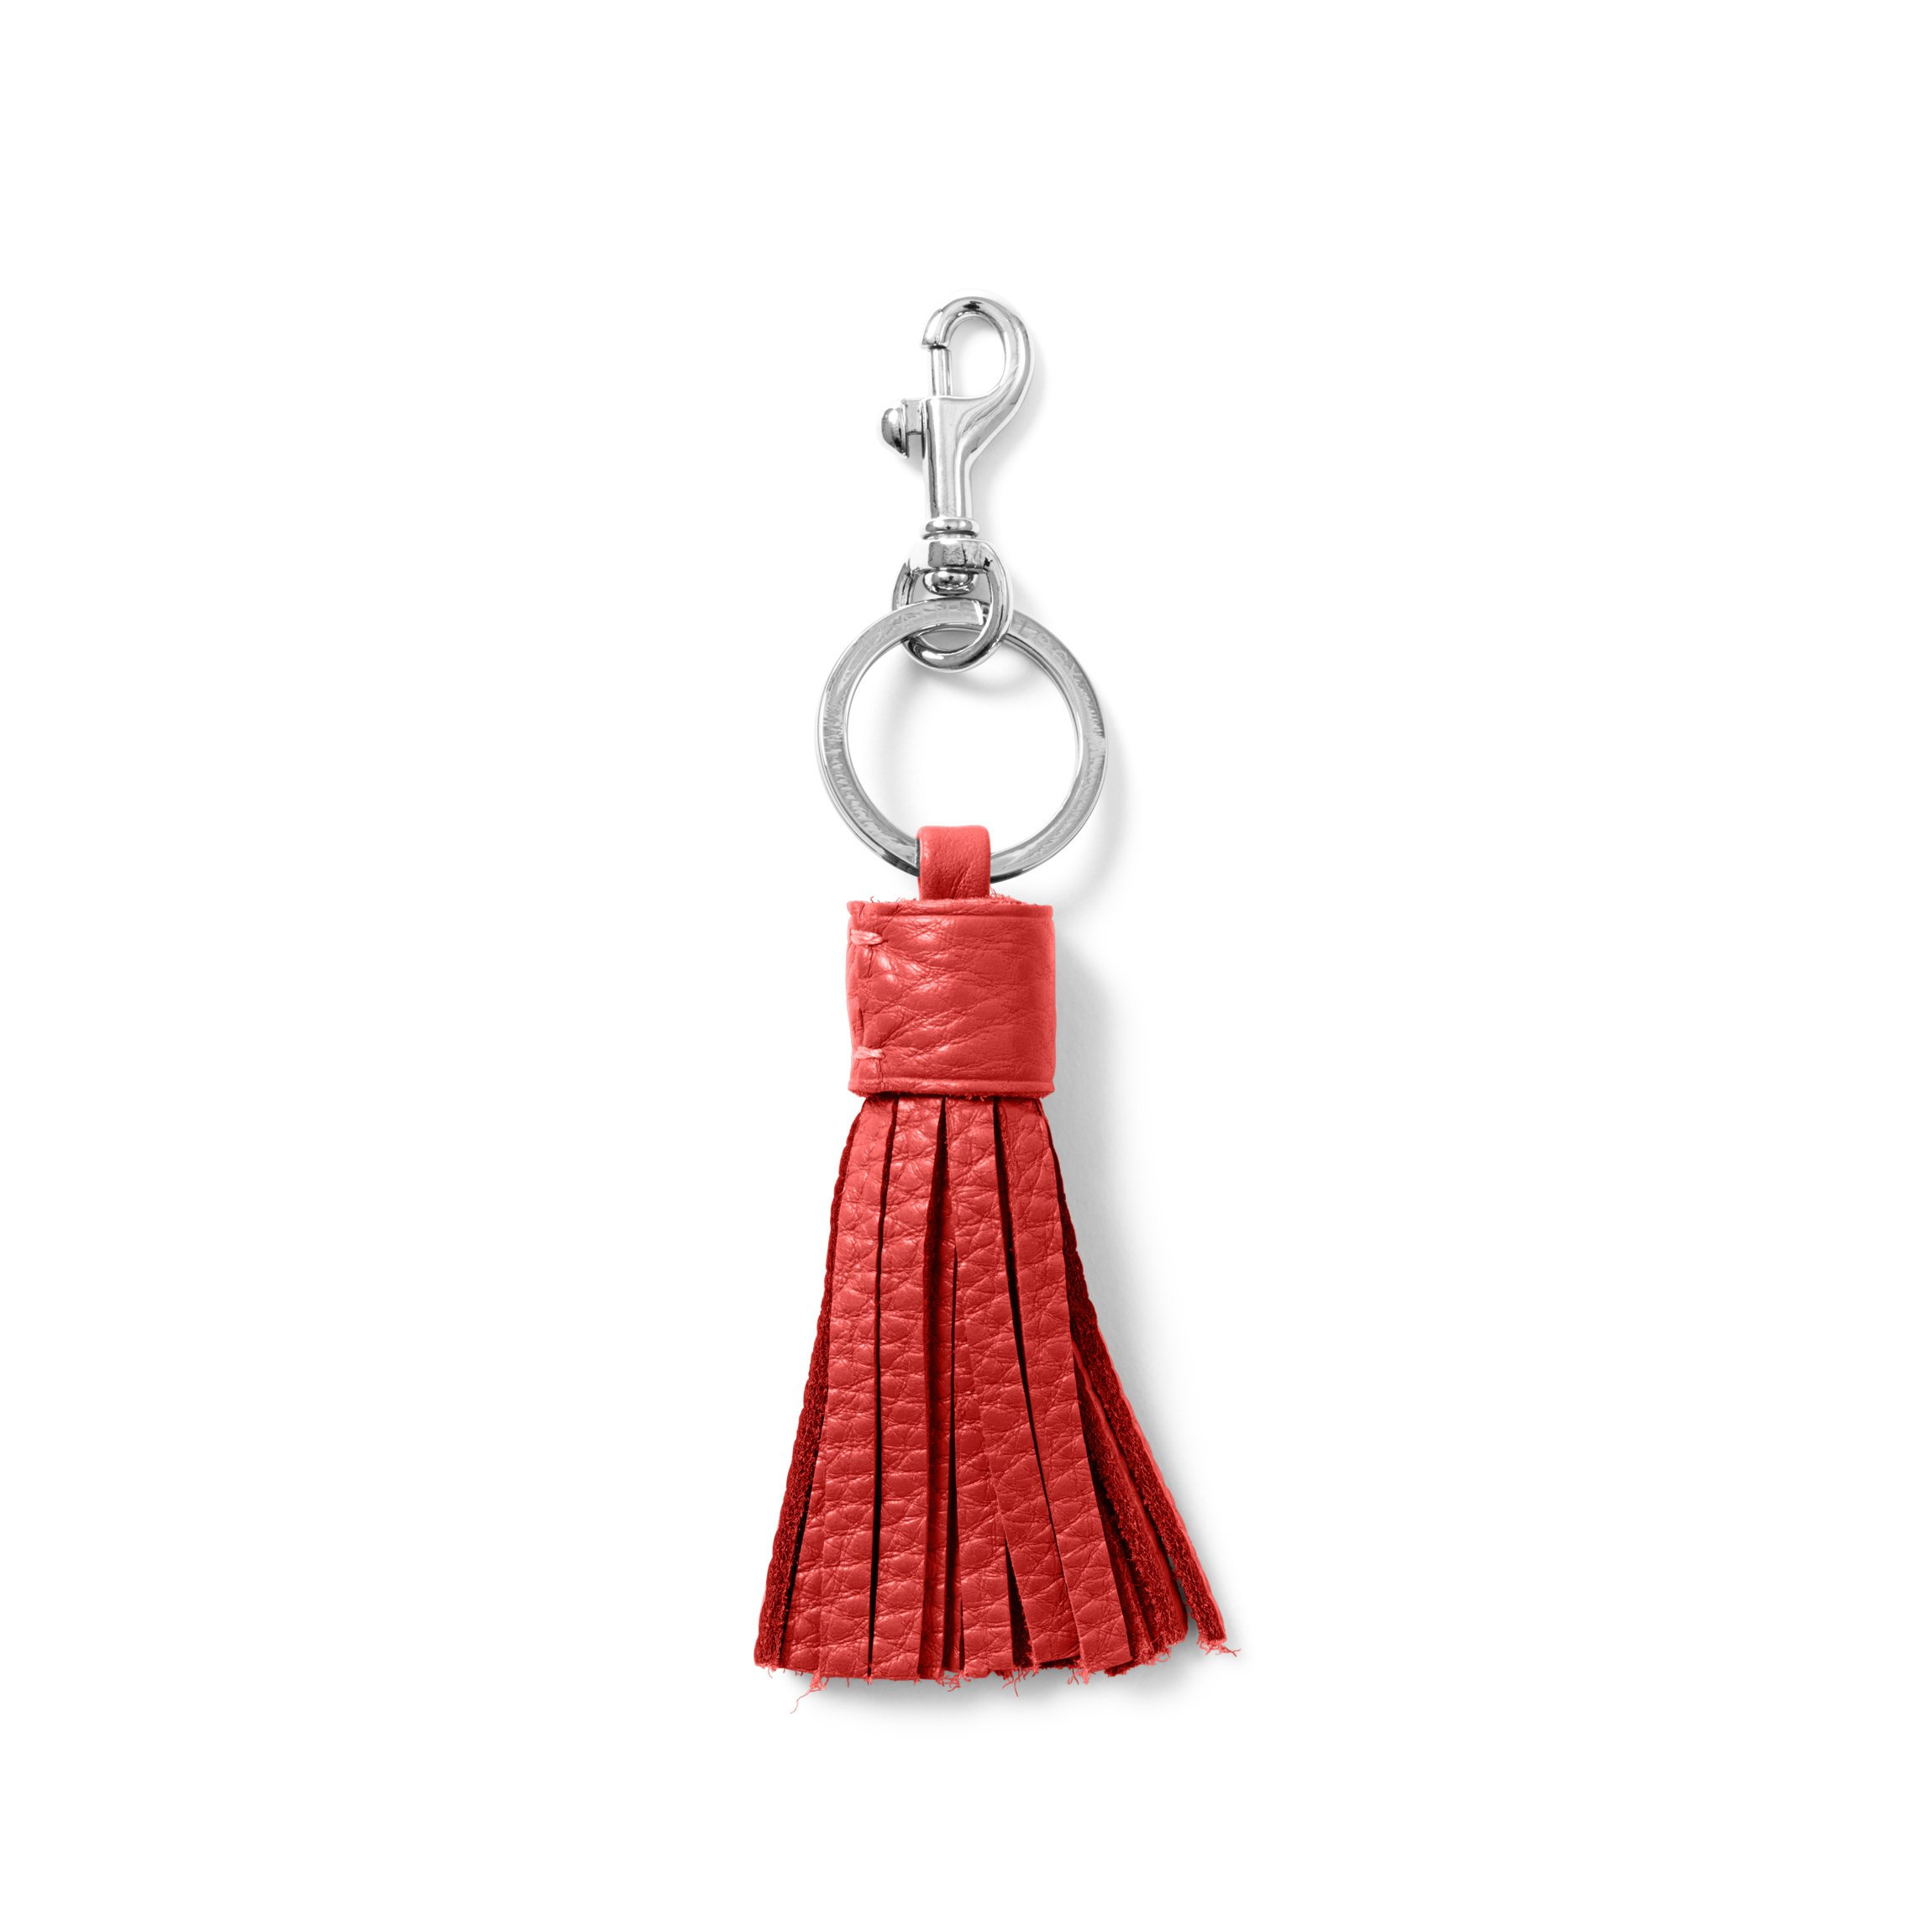 Tassel Key Chain - Full Grain Leather Leather - Scarlet (red)